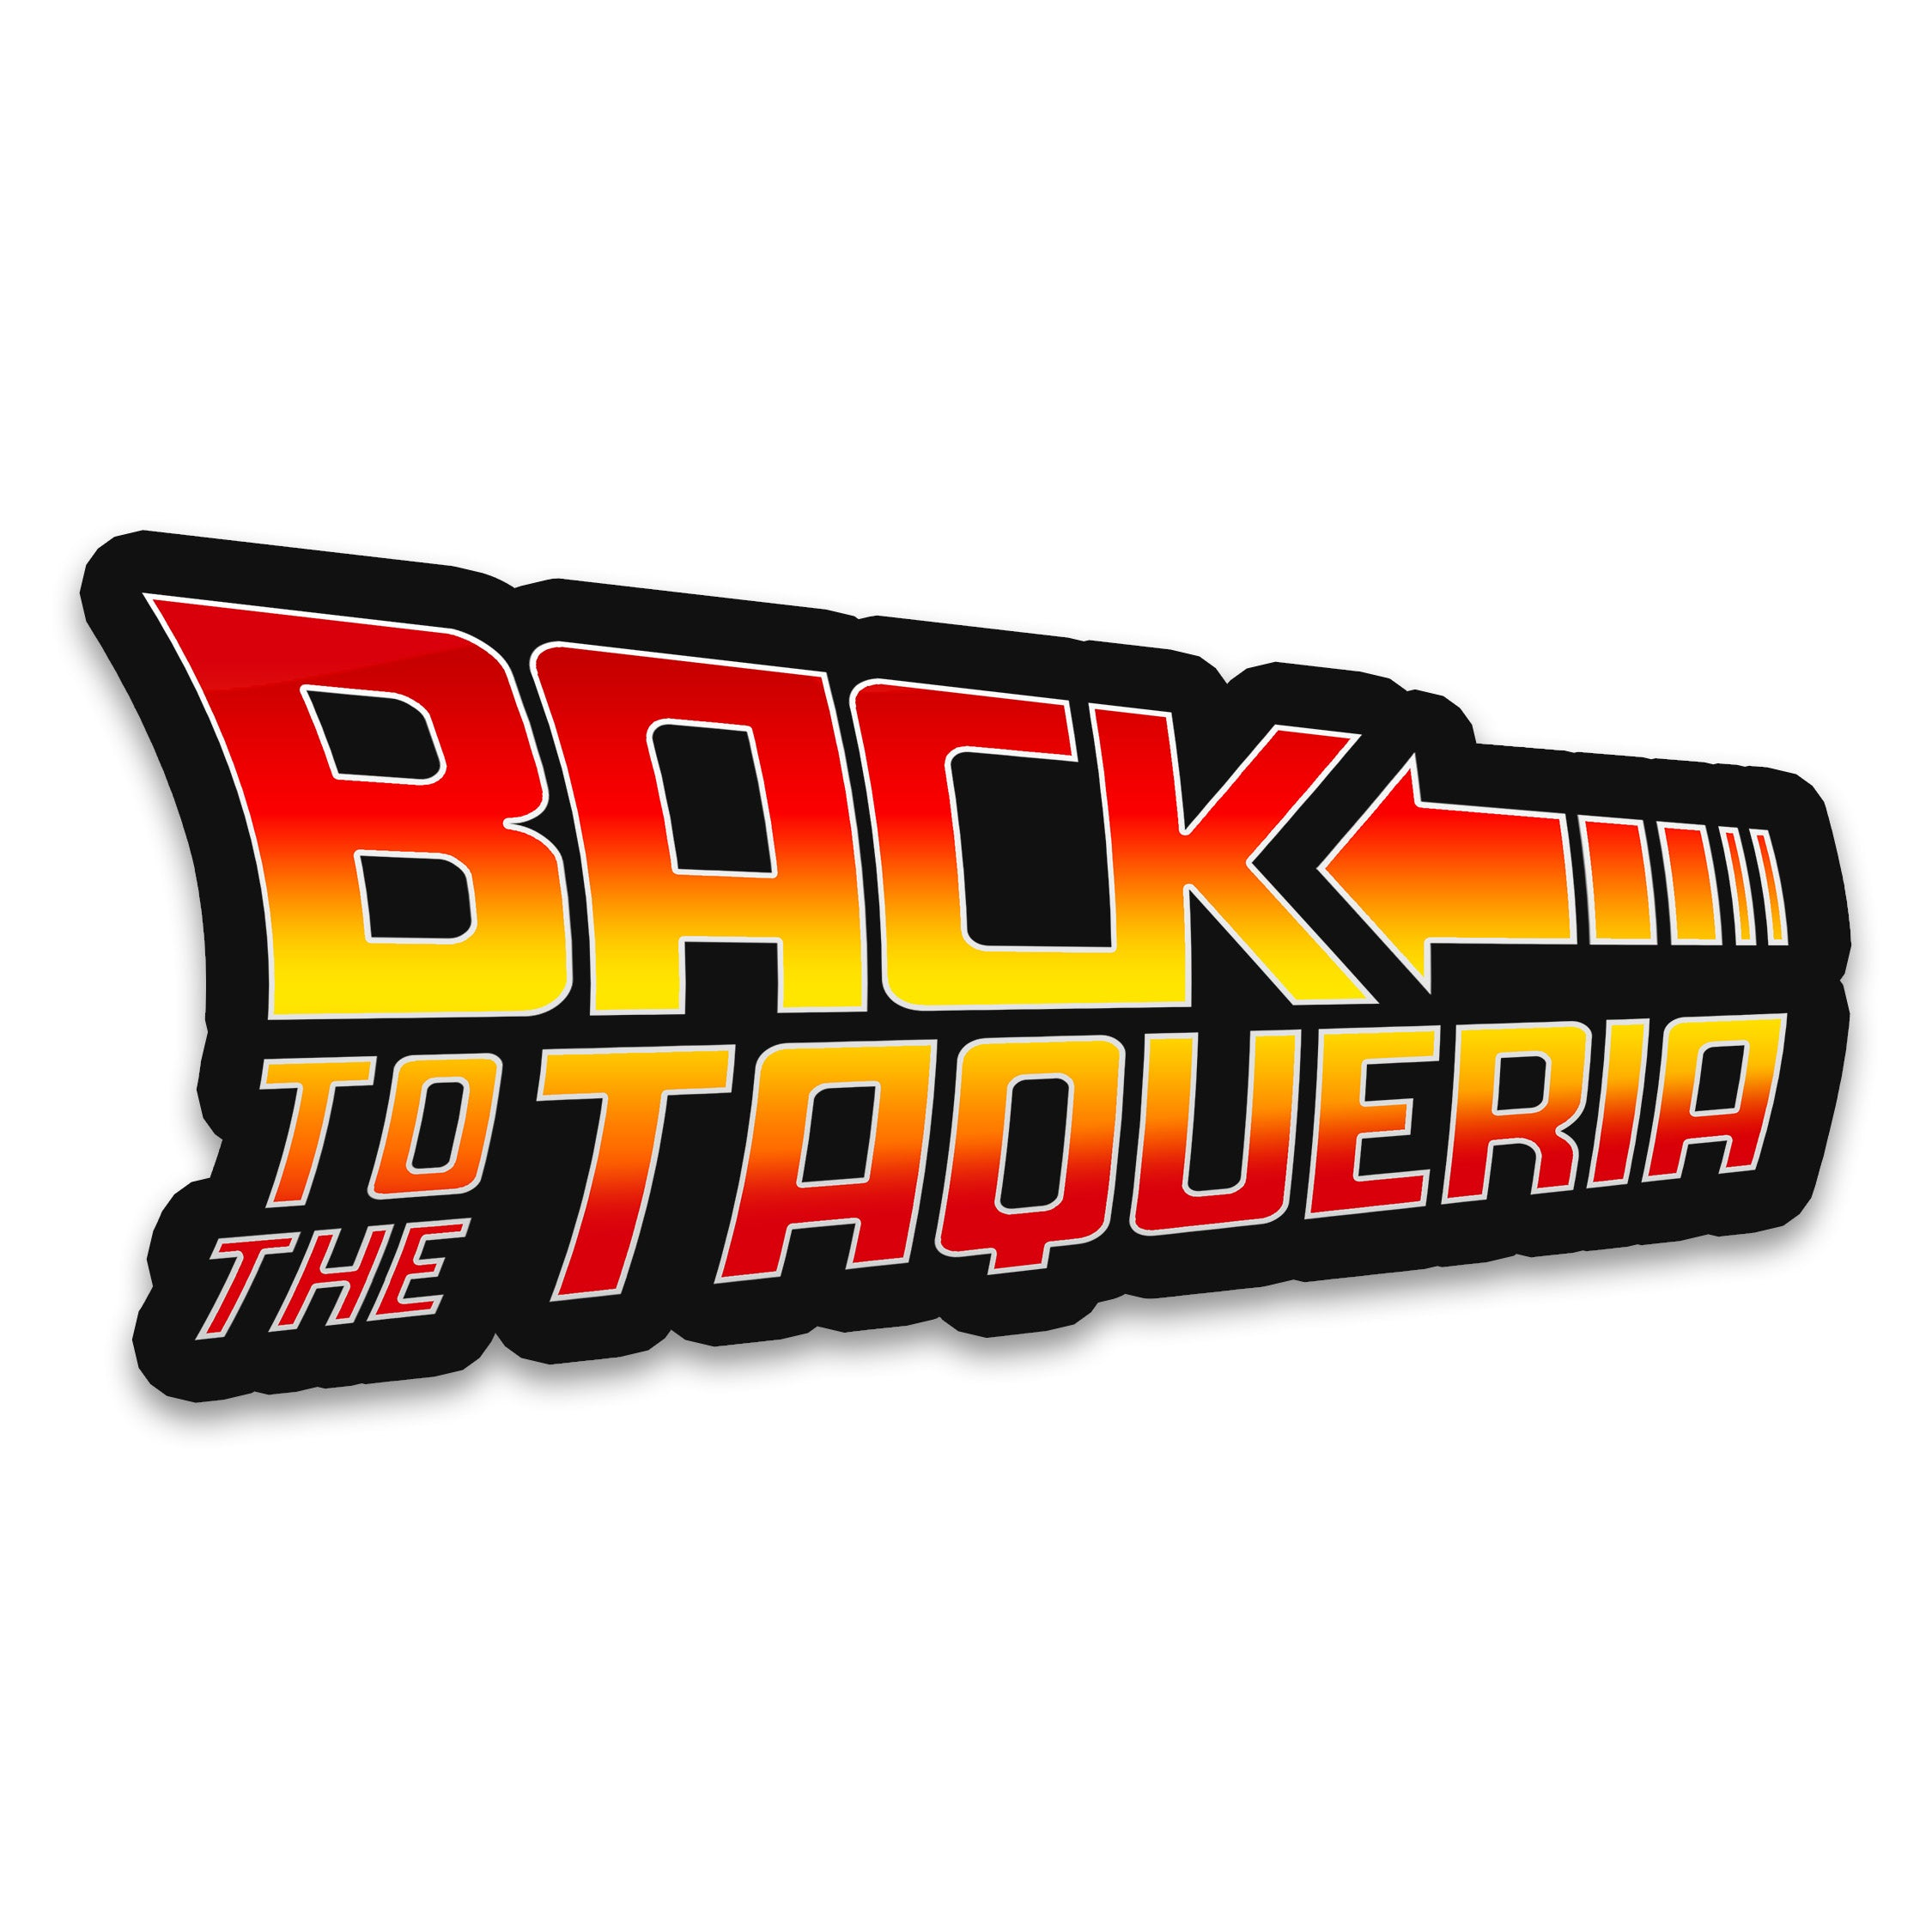 Back to the Taqueria (Car Sticker) - Taco Gear